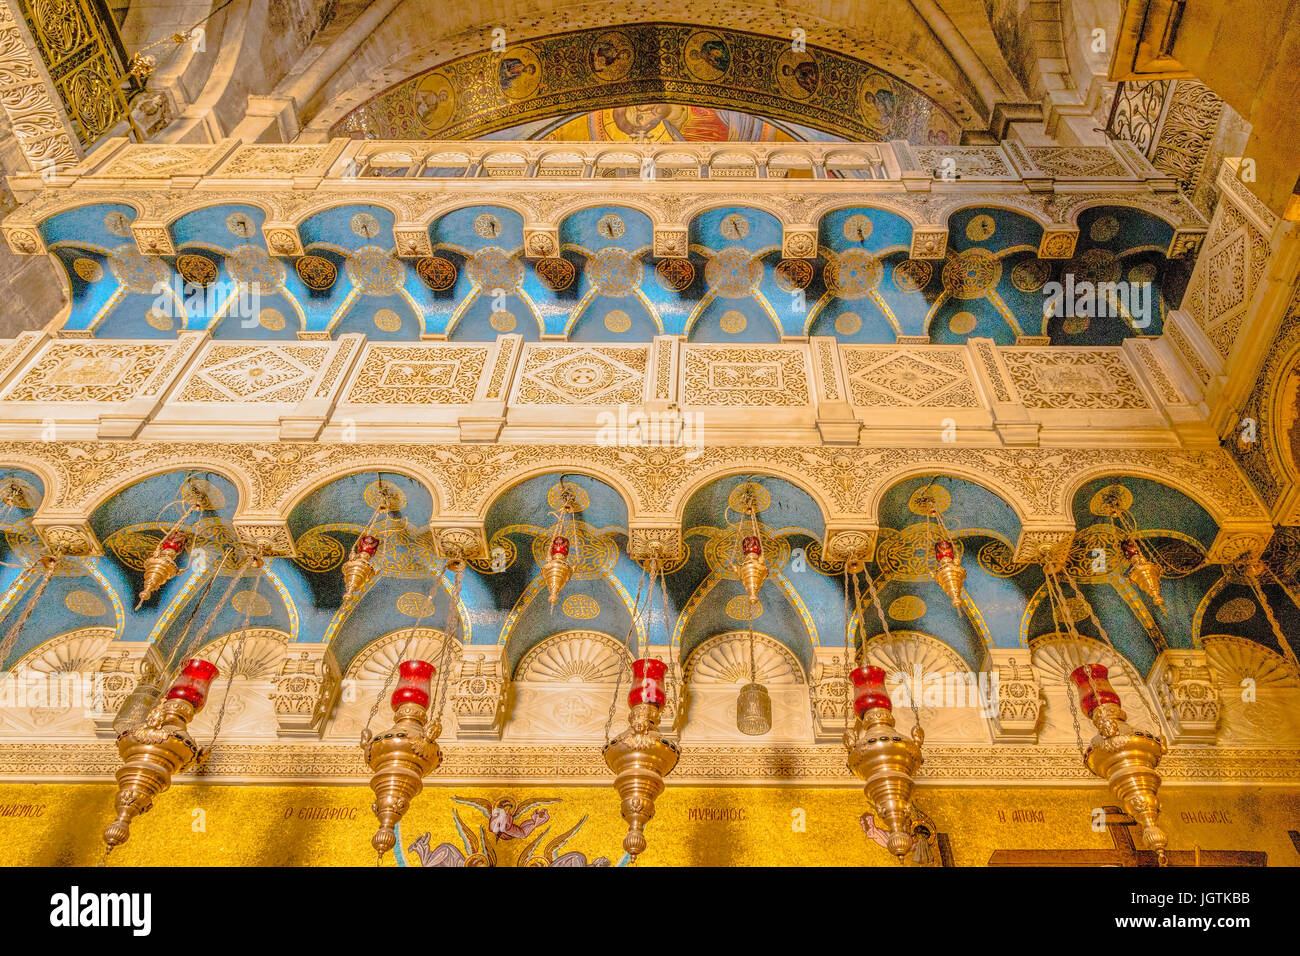 Gilded decorations and colorful mosaics on the interior walls in the ...